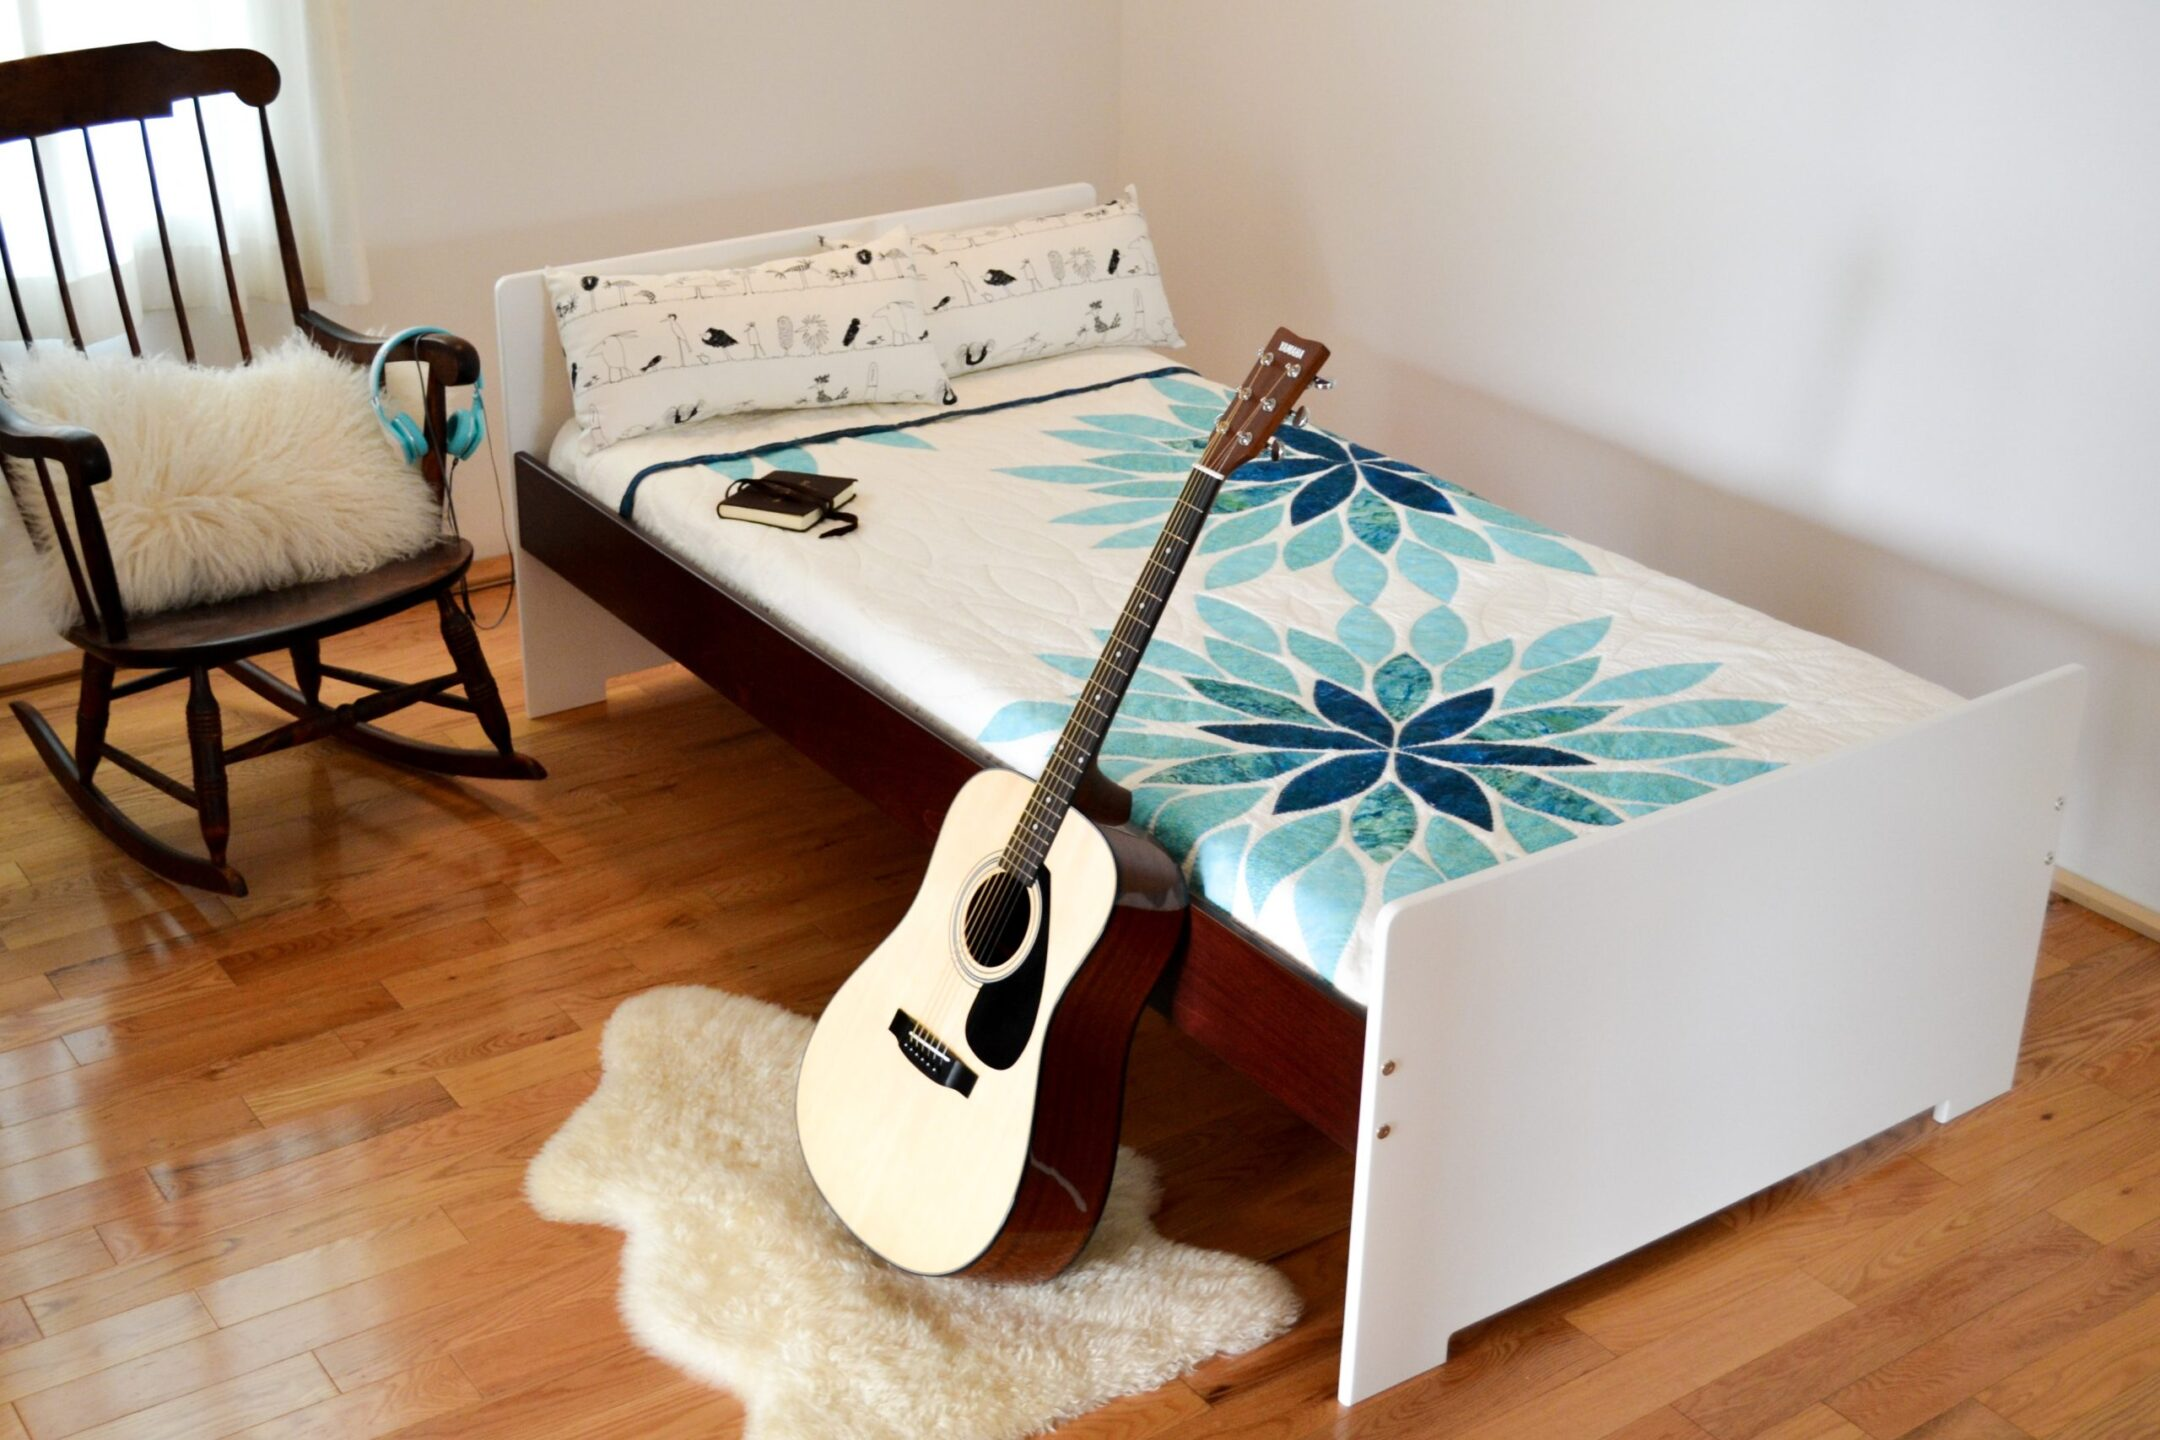 Birch multiply bed finished in an eco friendly varnish with white paint and a dark brown stain.